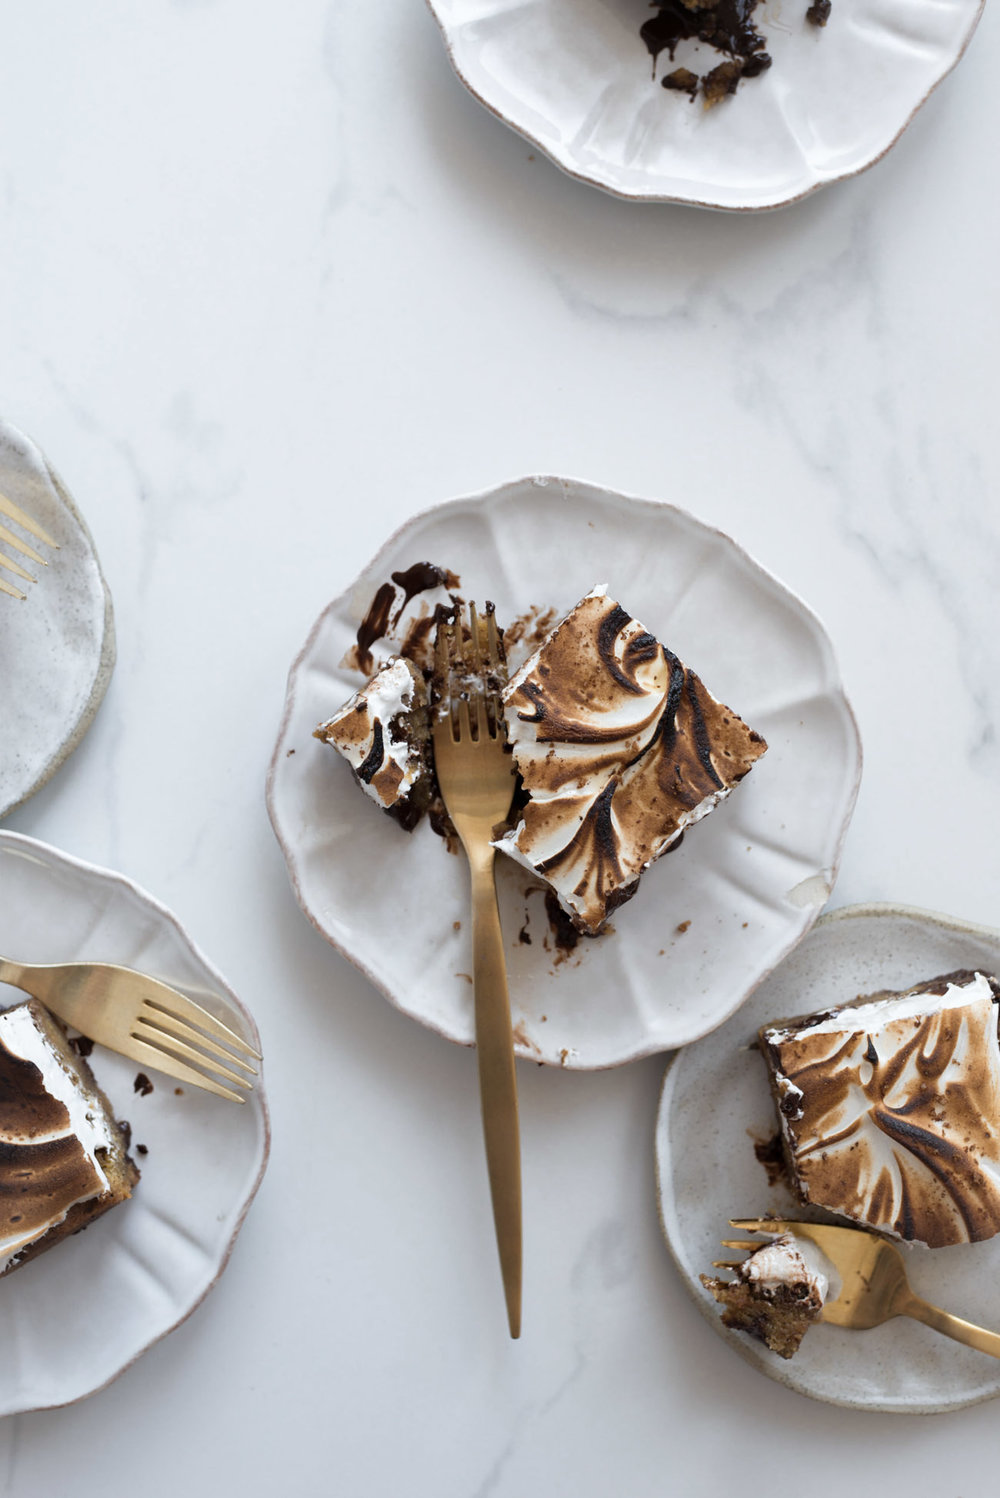 Brown-Butter-Cookie-Meringue-Bars-with-Espresso-Fleur-de-Sel-2.jpg